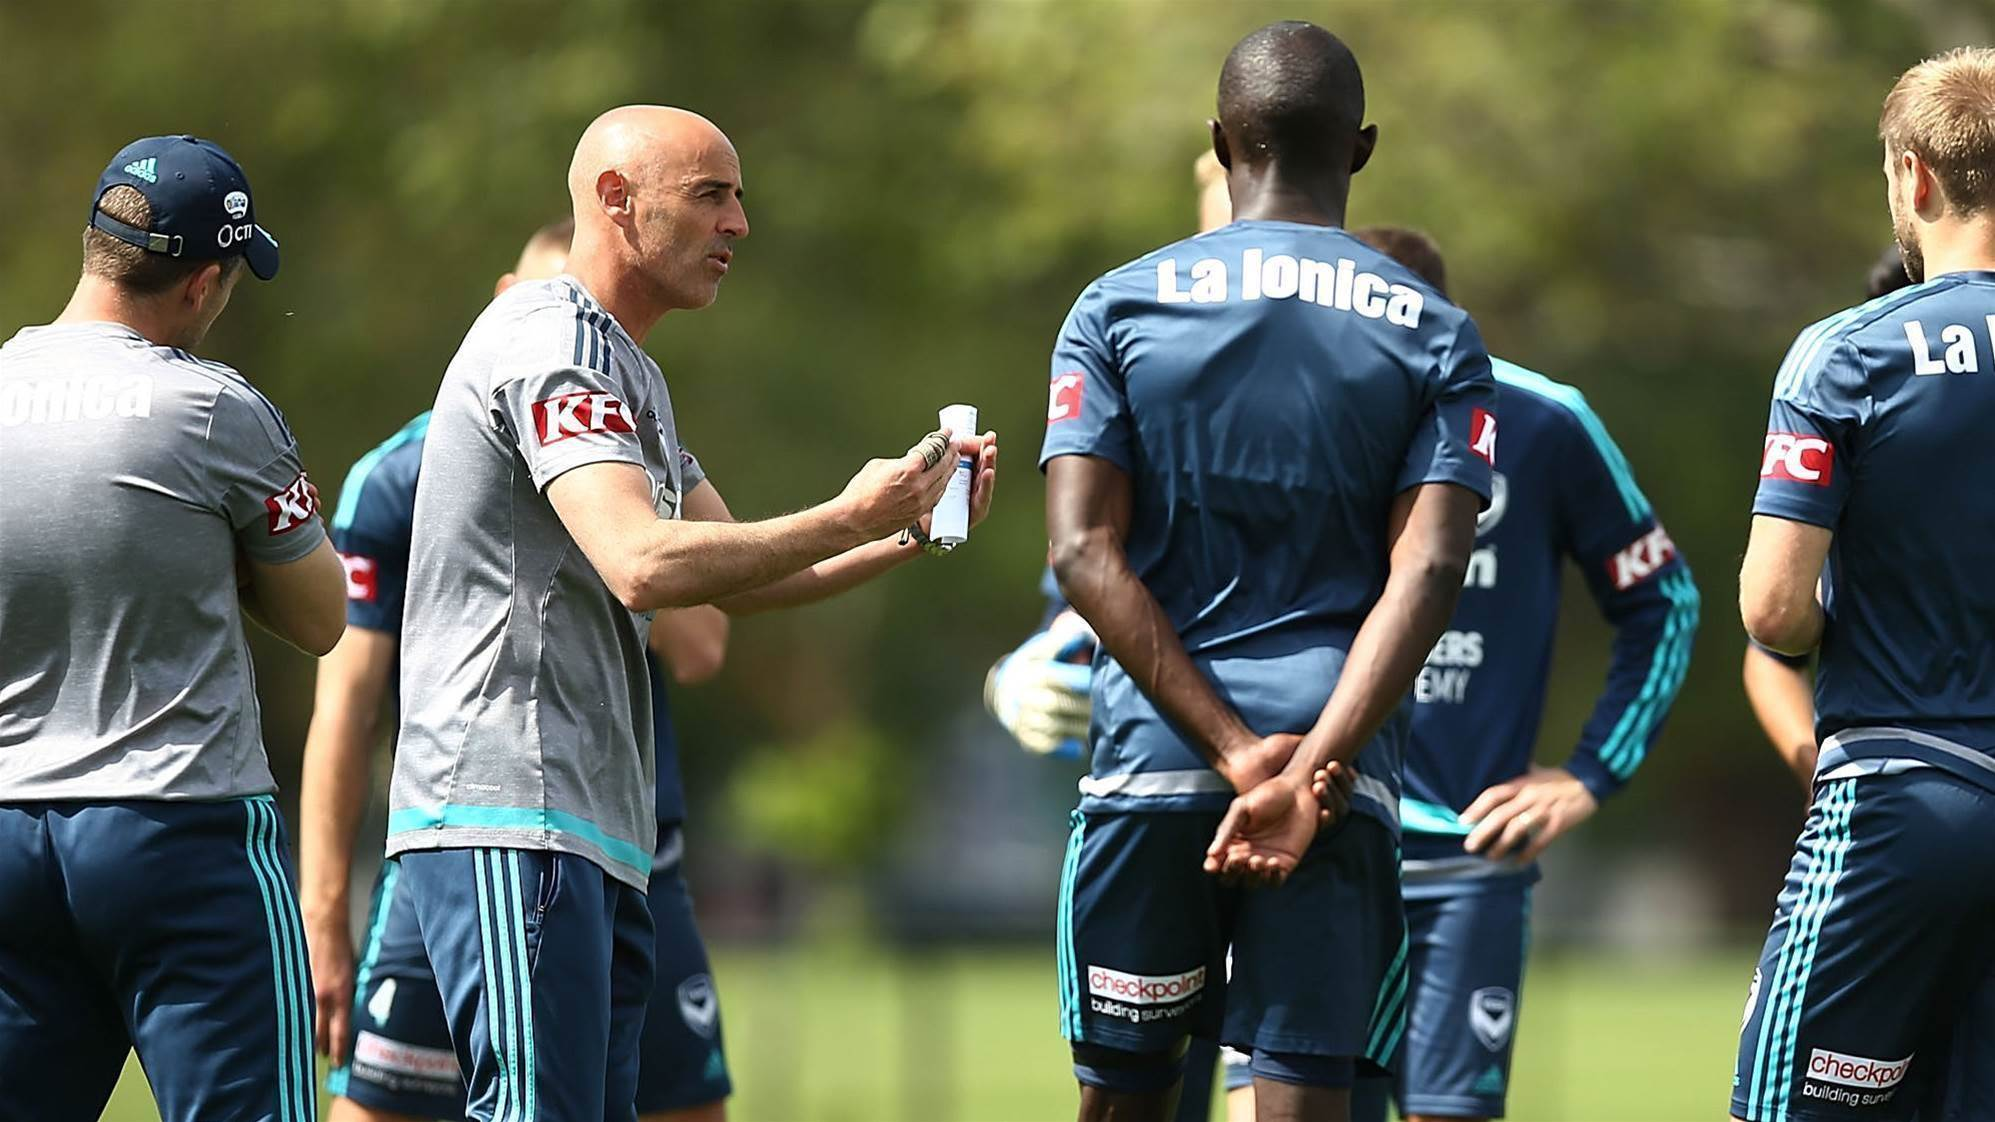 Muscat: Geria needs improvement before Socceroos call-up